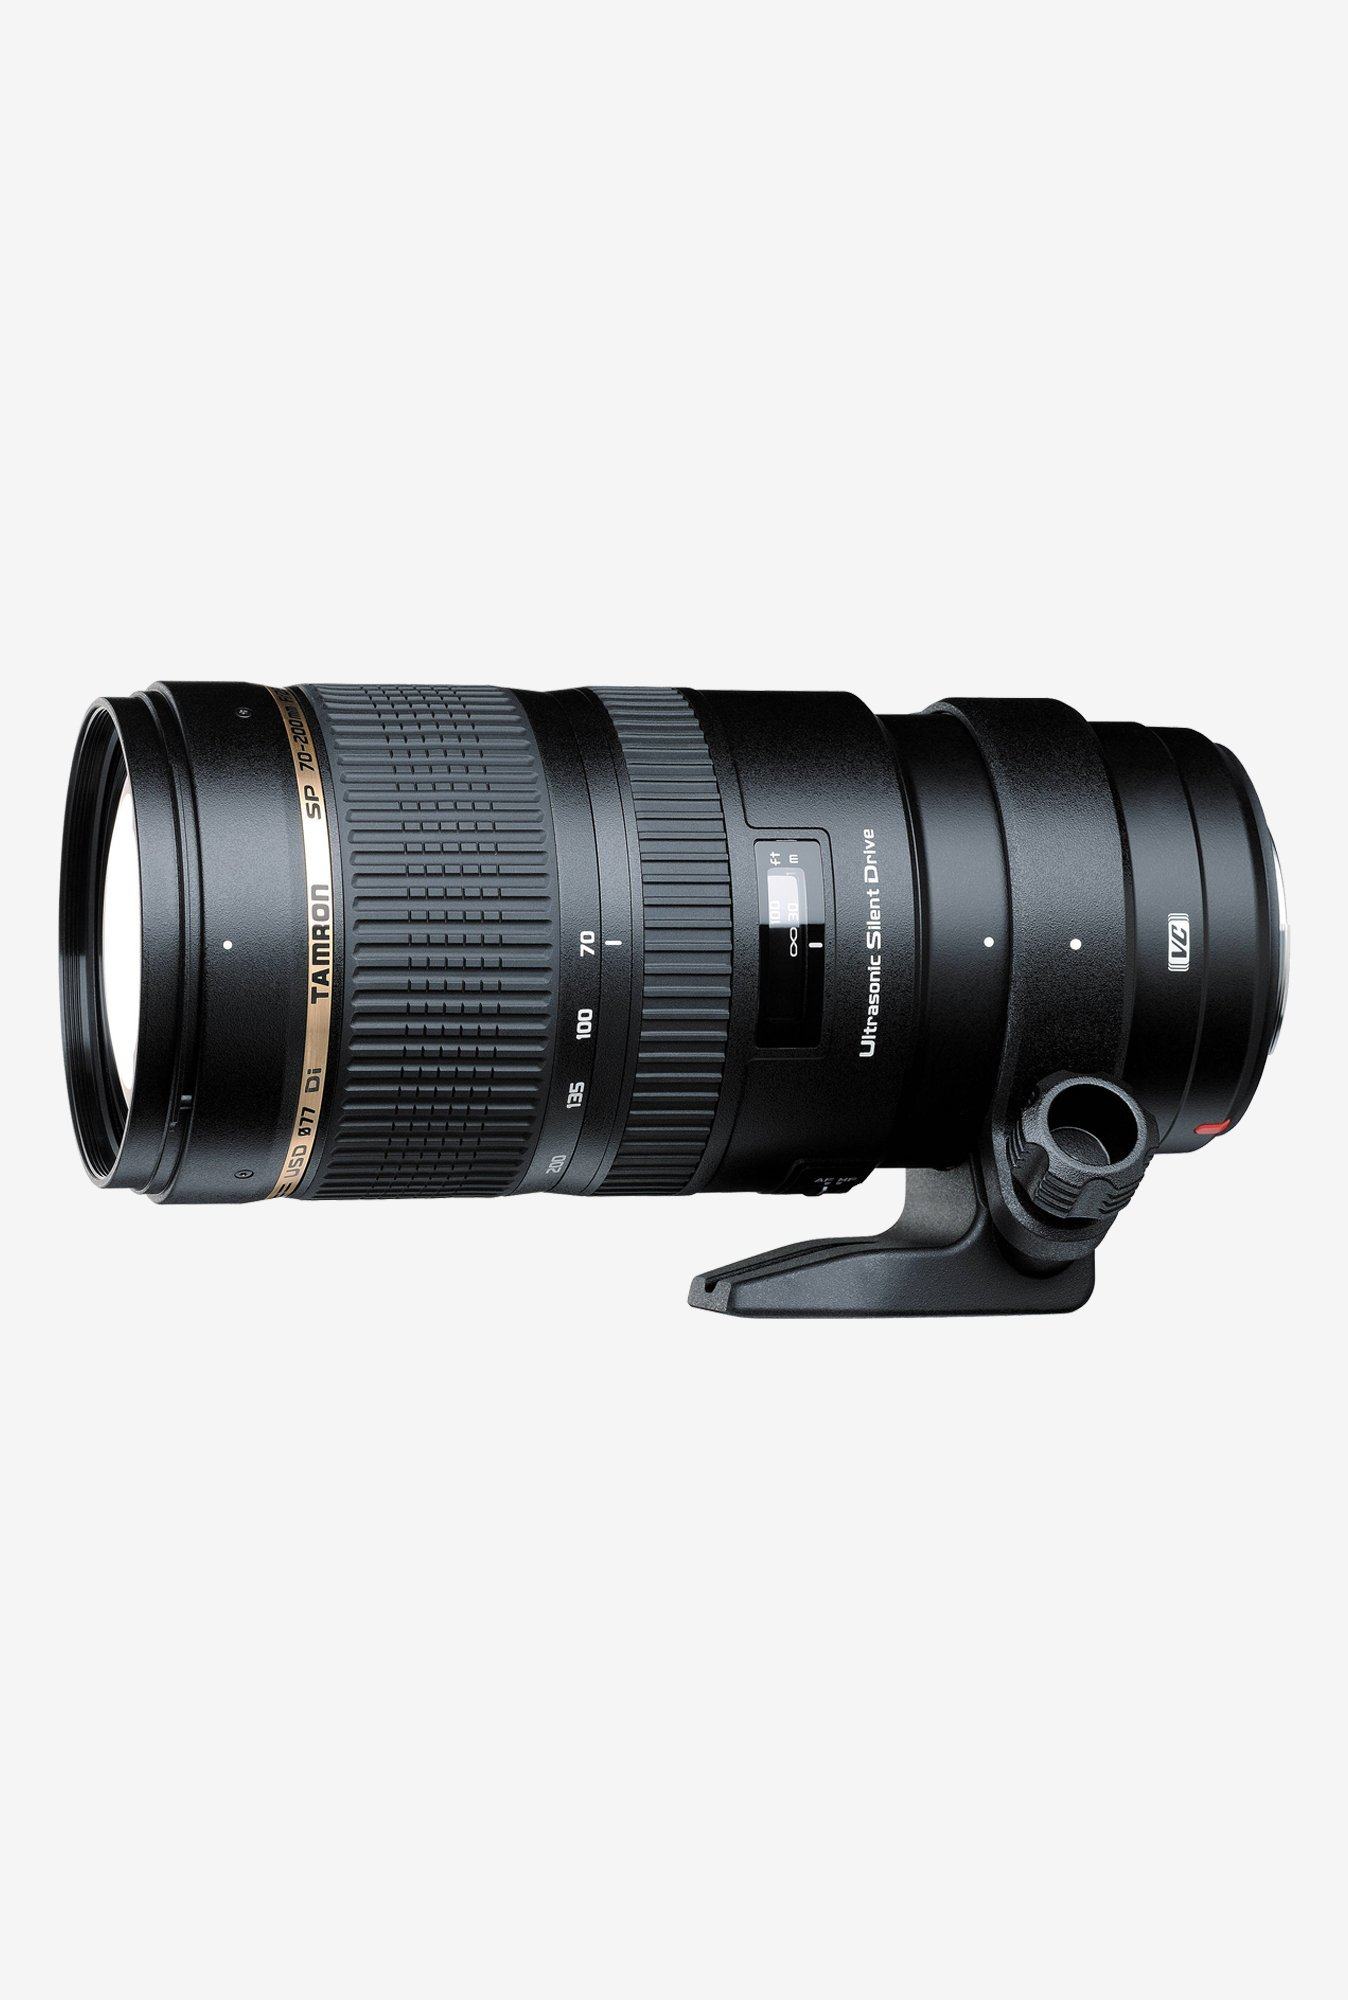 Tamron SP 70-200mm f/2.8 Di VC USD Lens for Nikon DSLR